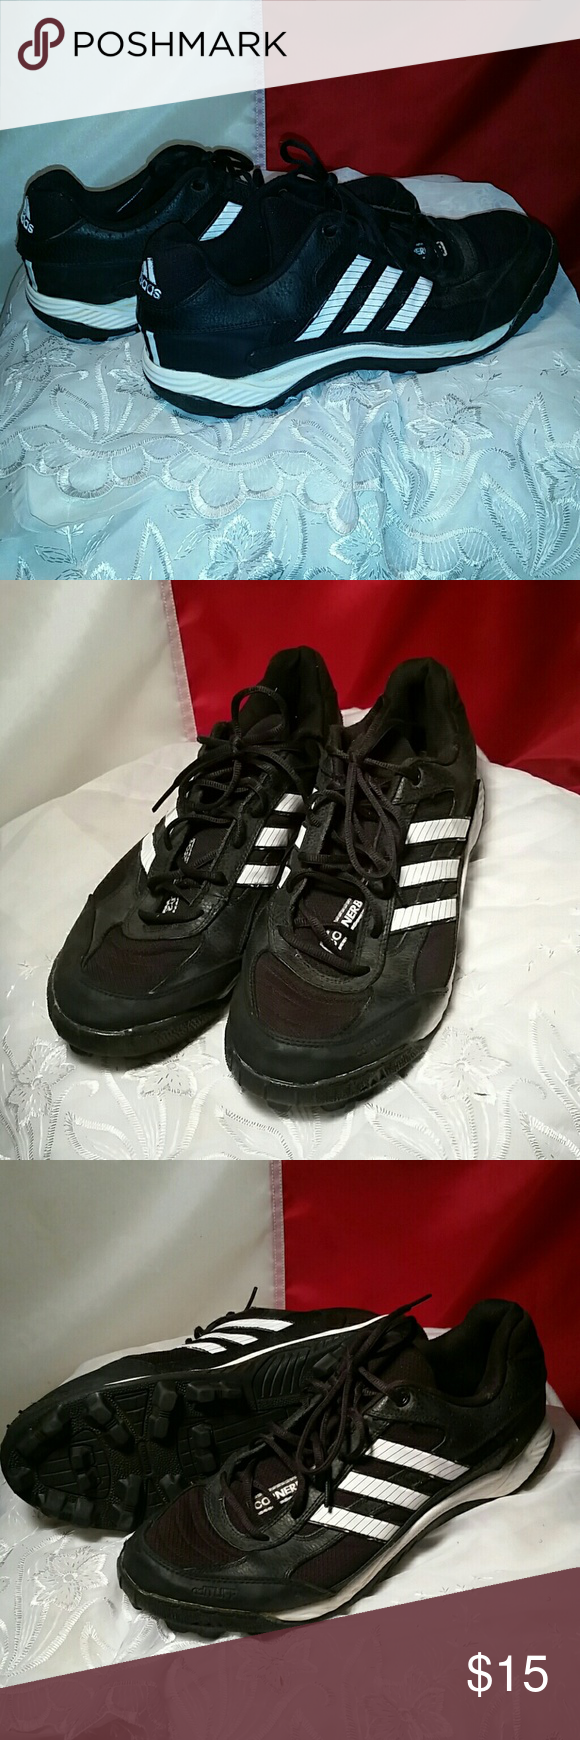 30ac21c74185 Adidas corner blitz cleats Adidas corner blitz cleats,black shoes,white  stripes,only used a few times Adidas Shoes Athletic Shoes